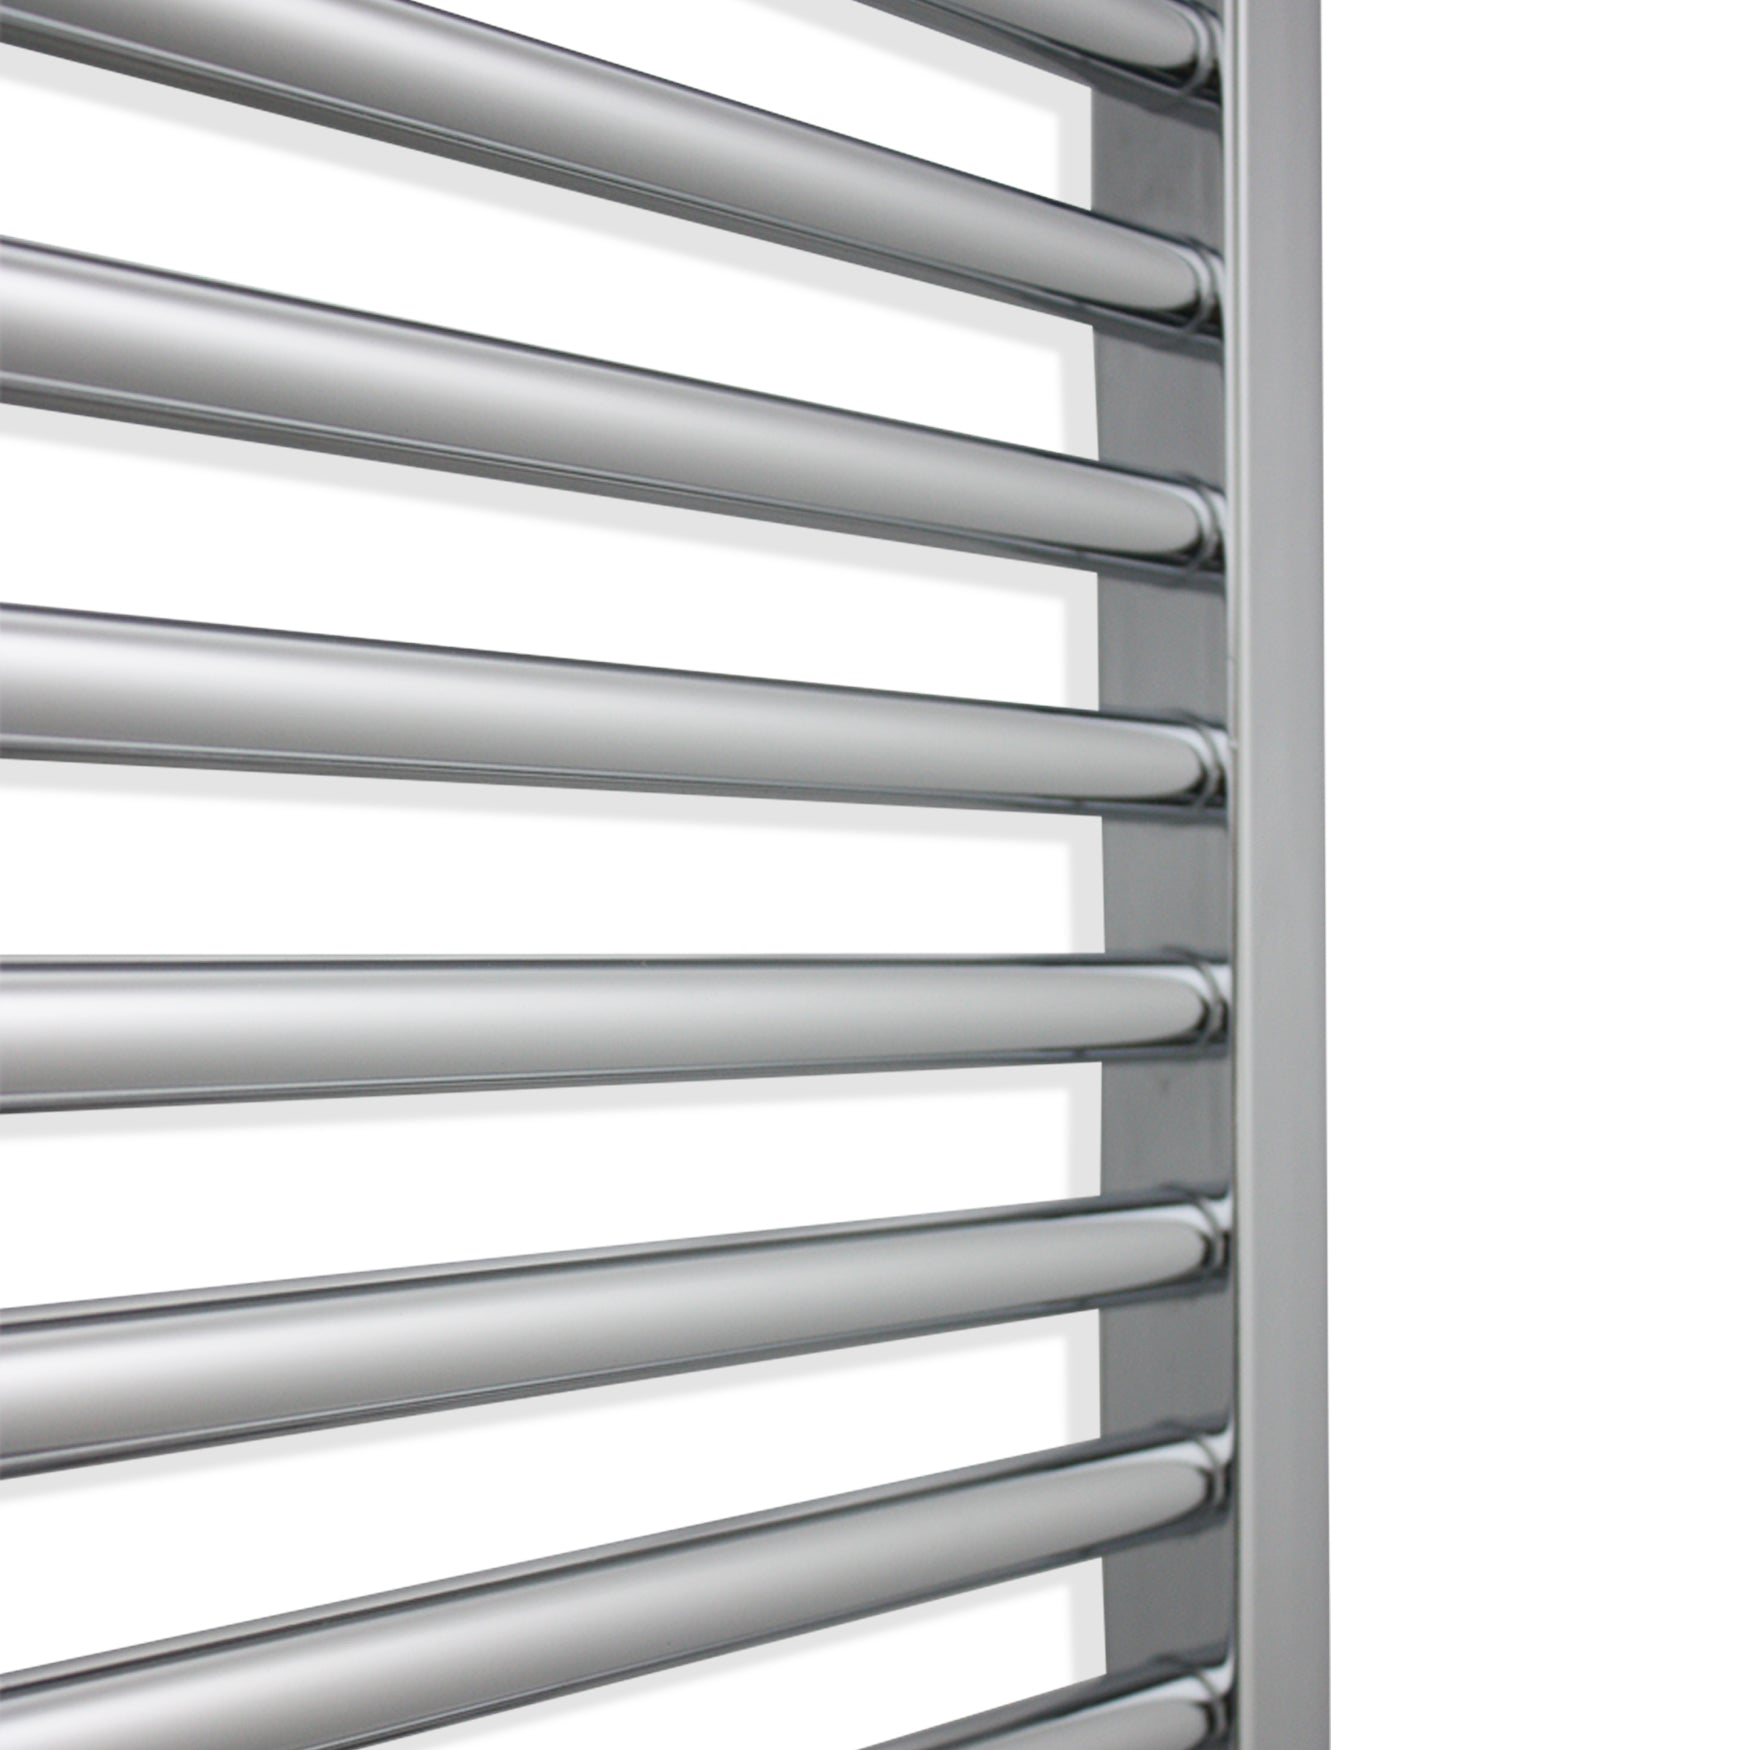 500mm Wide 400mm High Flat Chrome Heated Towel Rail Radiator HTR